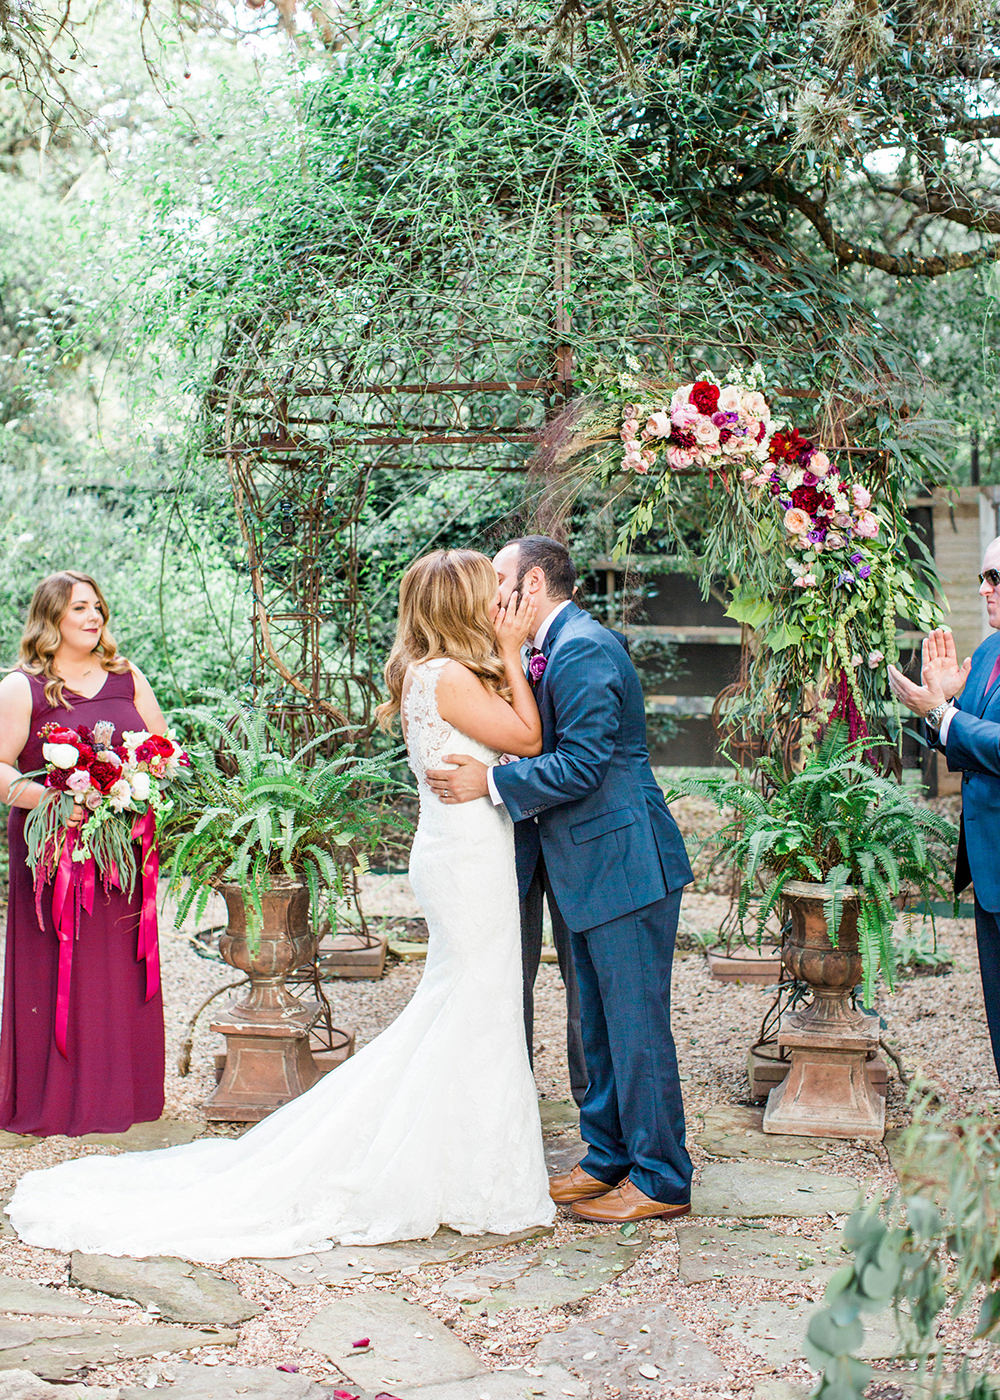 ceremony kiss - photo by Honey Gem Creative https://ruffledblog.com/hill-country-garden-wedding